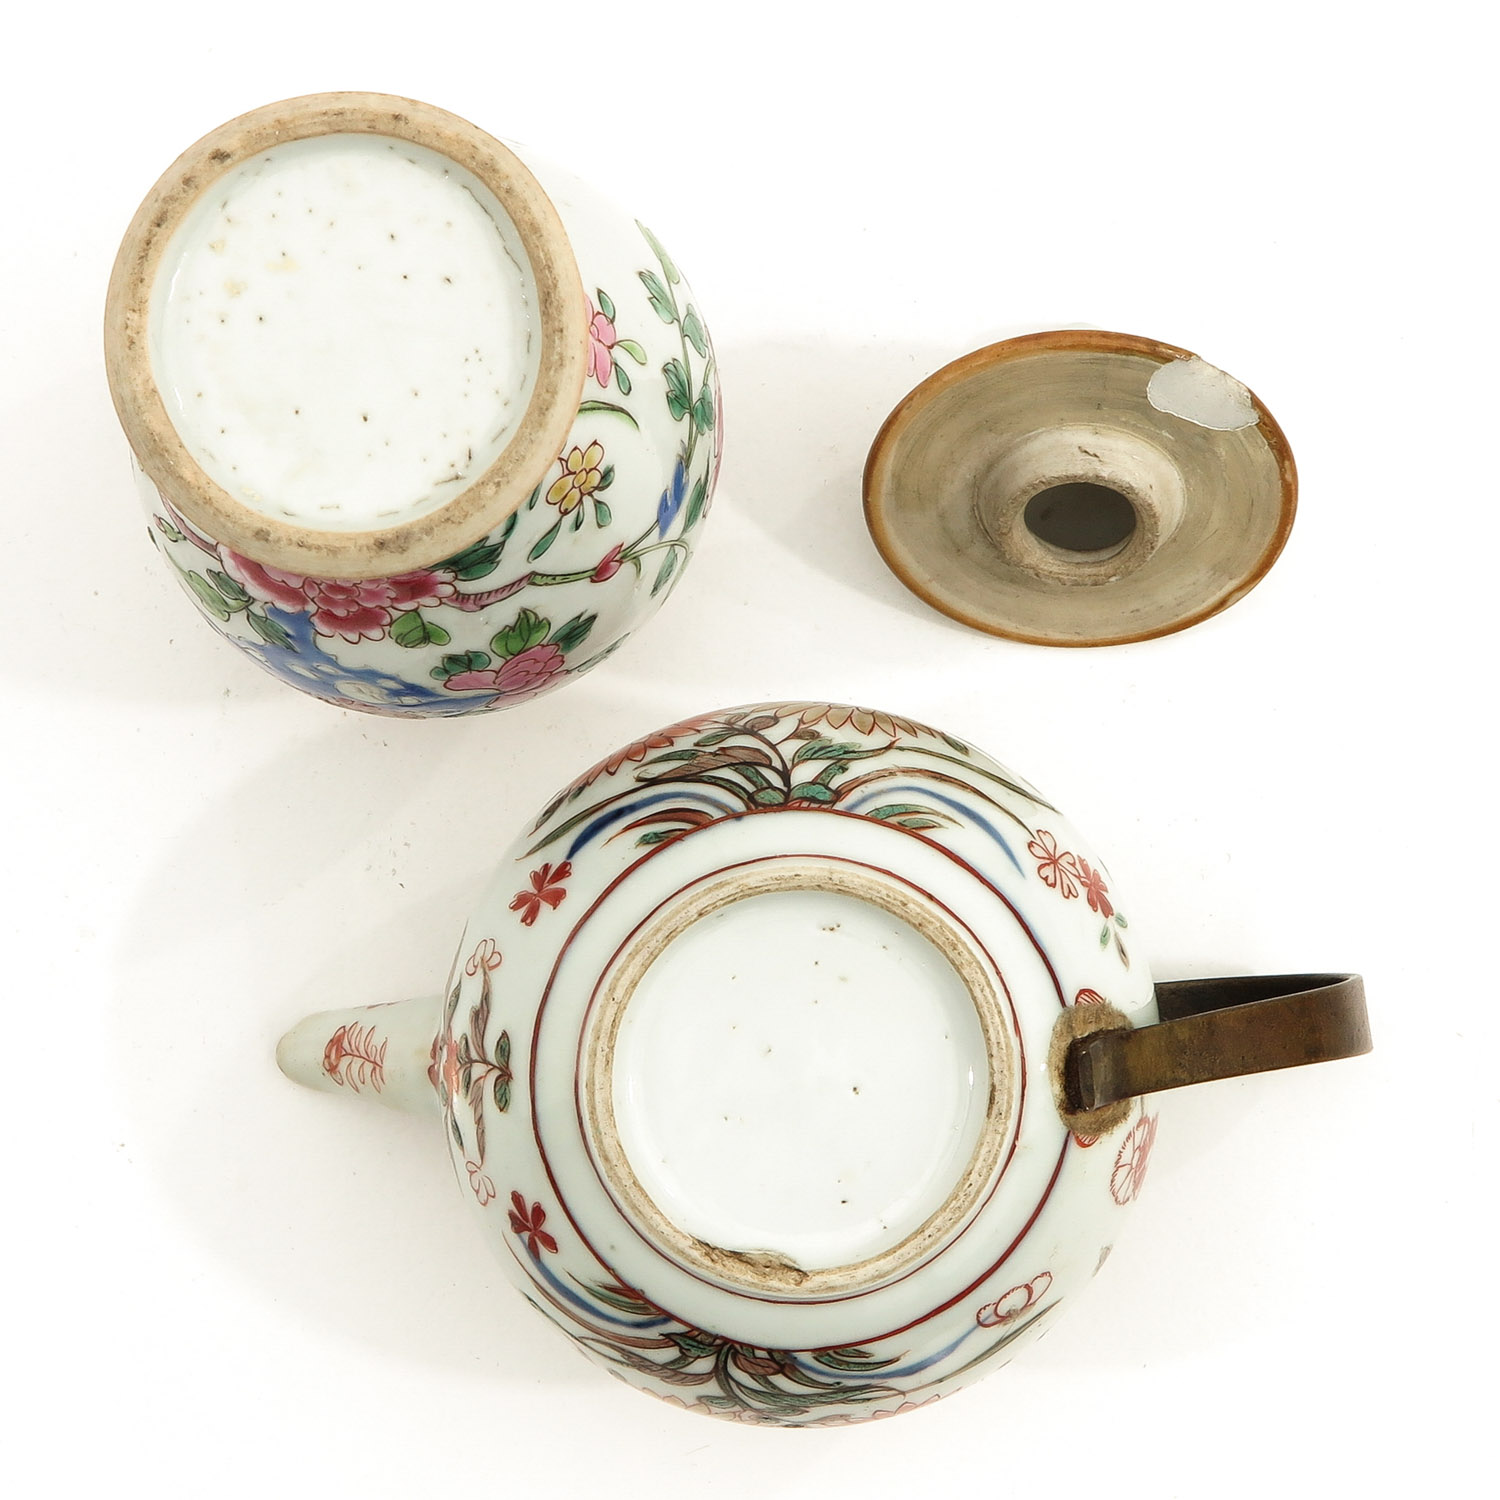 A Famille Rose Vase and Teapot - Image 6 of 9